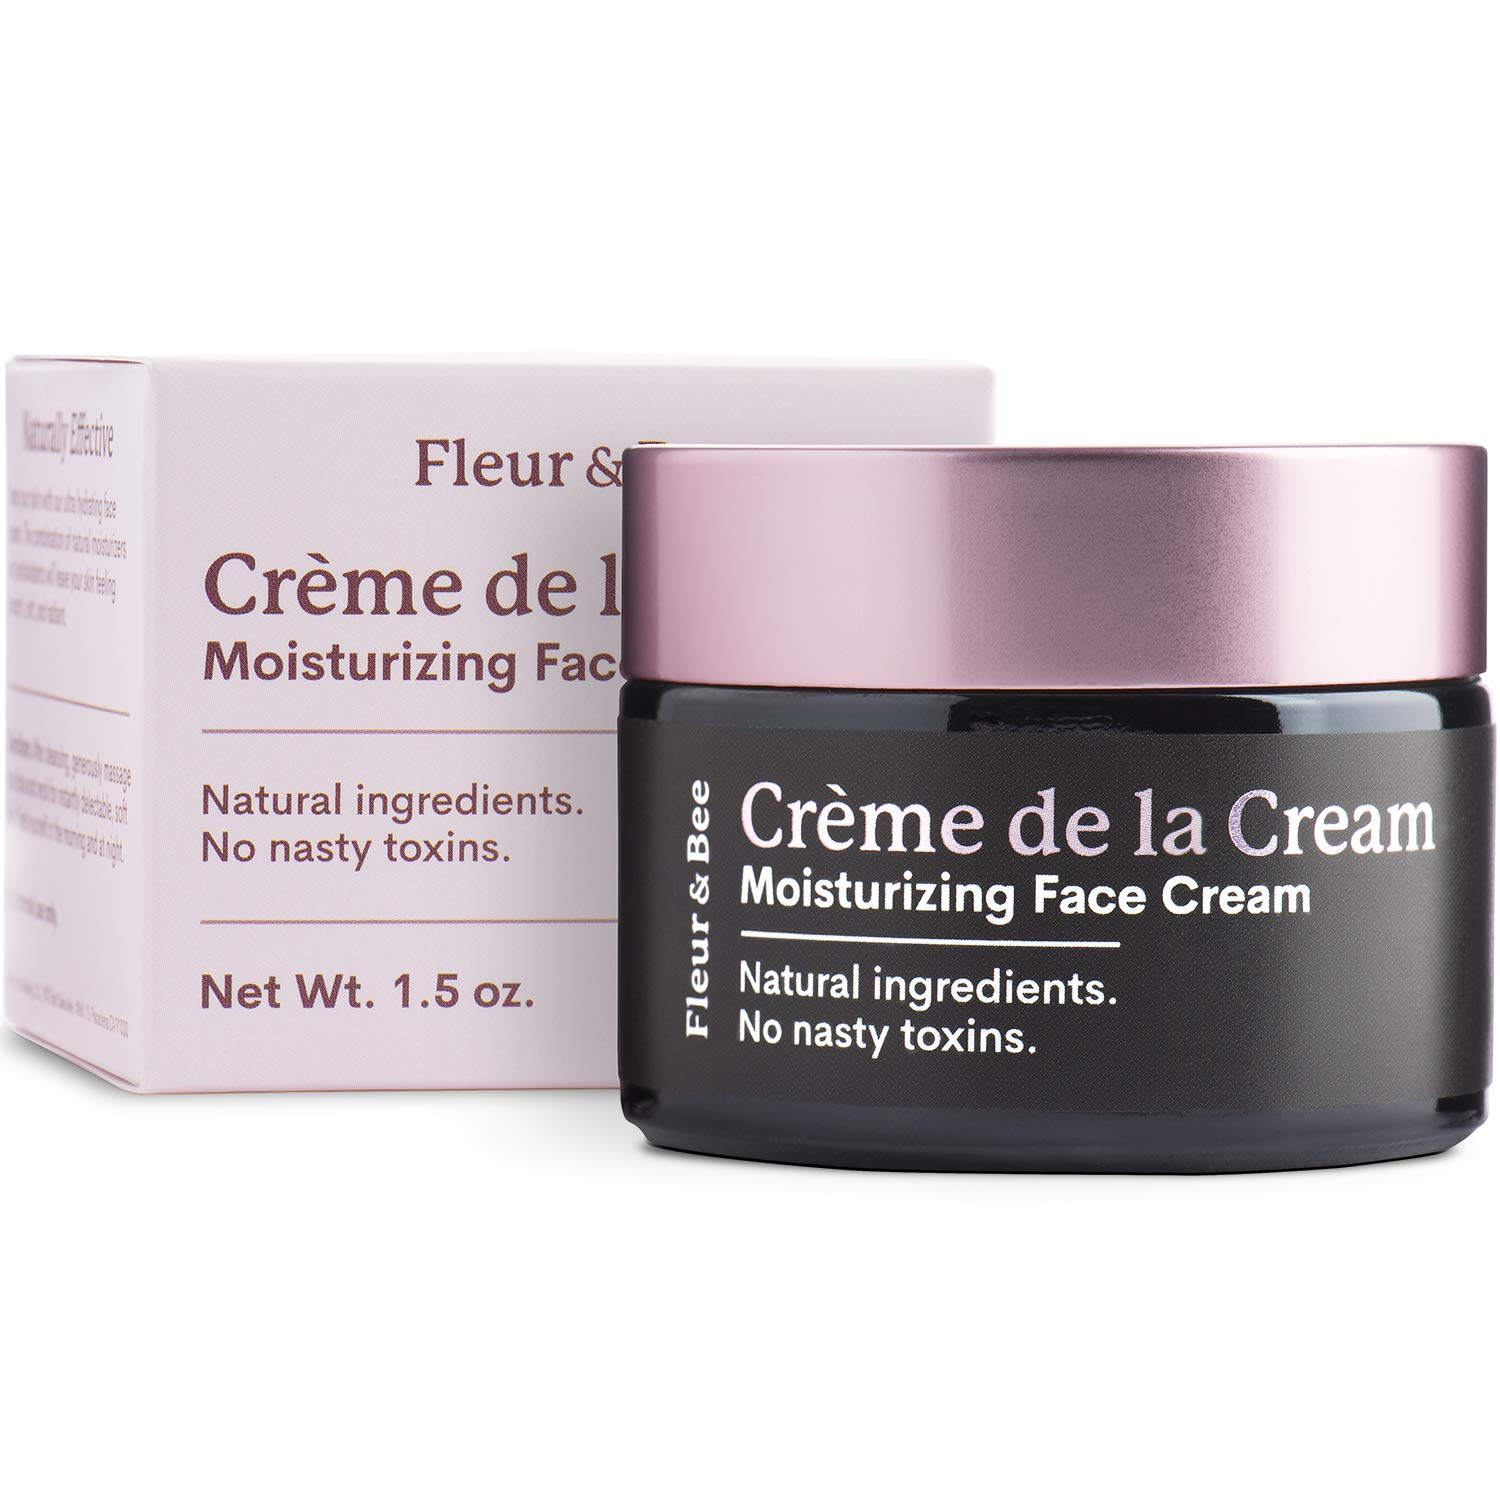 Natural Face Cream Moisturizer – Dermatologist Tested, Hydrating, Anti Aging, Firming, Vitamin C for Even Skin- Vegan Skin Care with Organic Ingredients | Creme de la Cream by Fleur & Bee - 1.5 oz